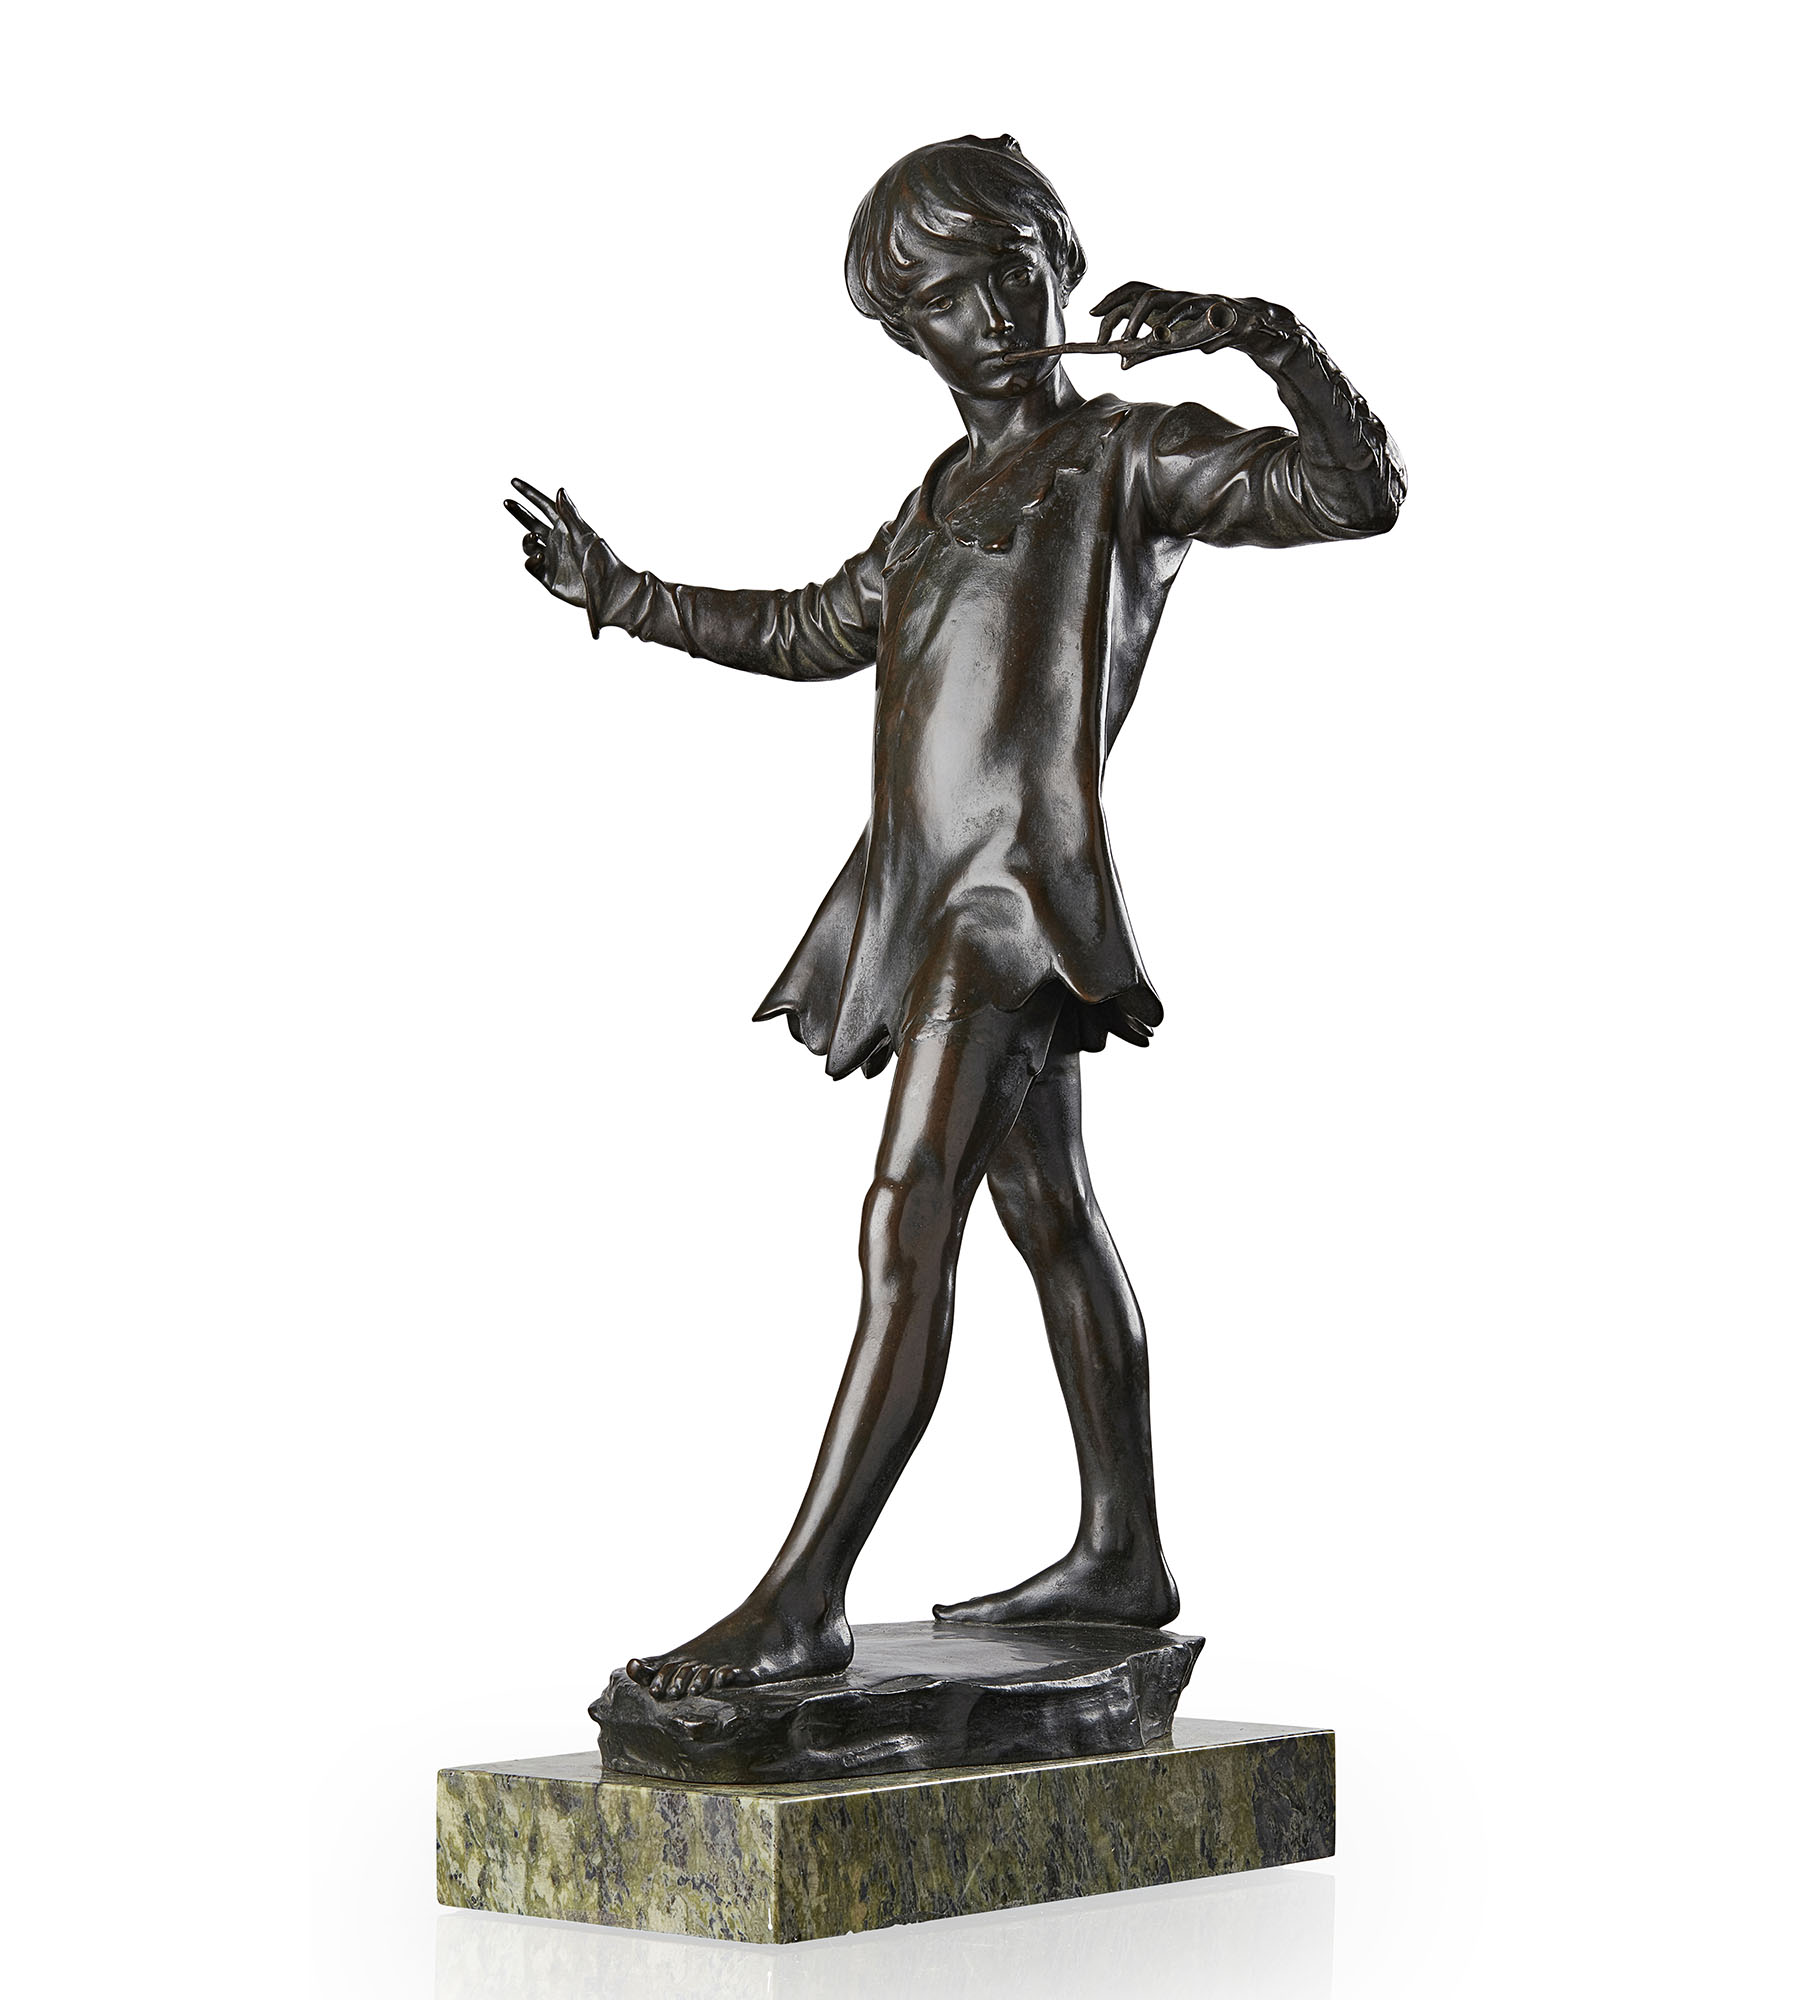 SIR GEORGE JAMES FRAMPTON (1860-1928) | 'PETER PAN', DATED 1911 | Sold for £35,000*